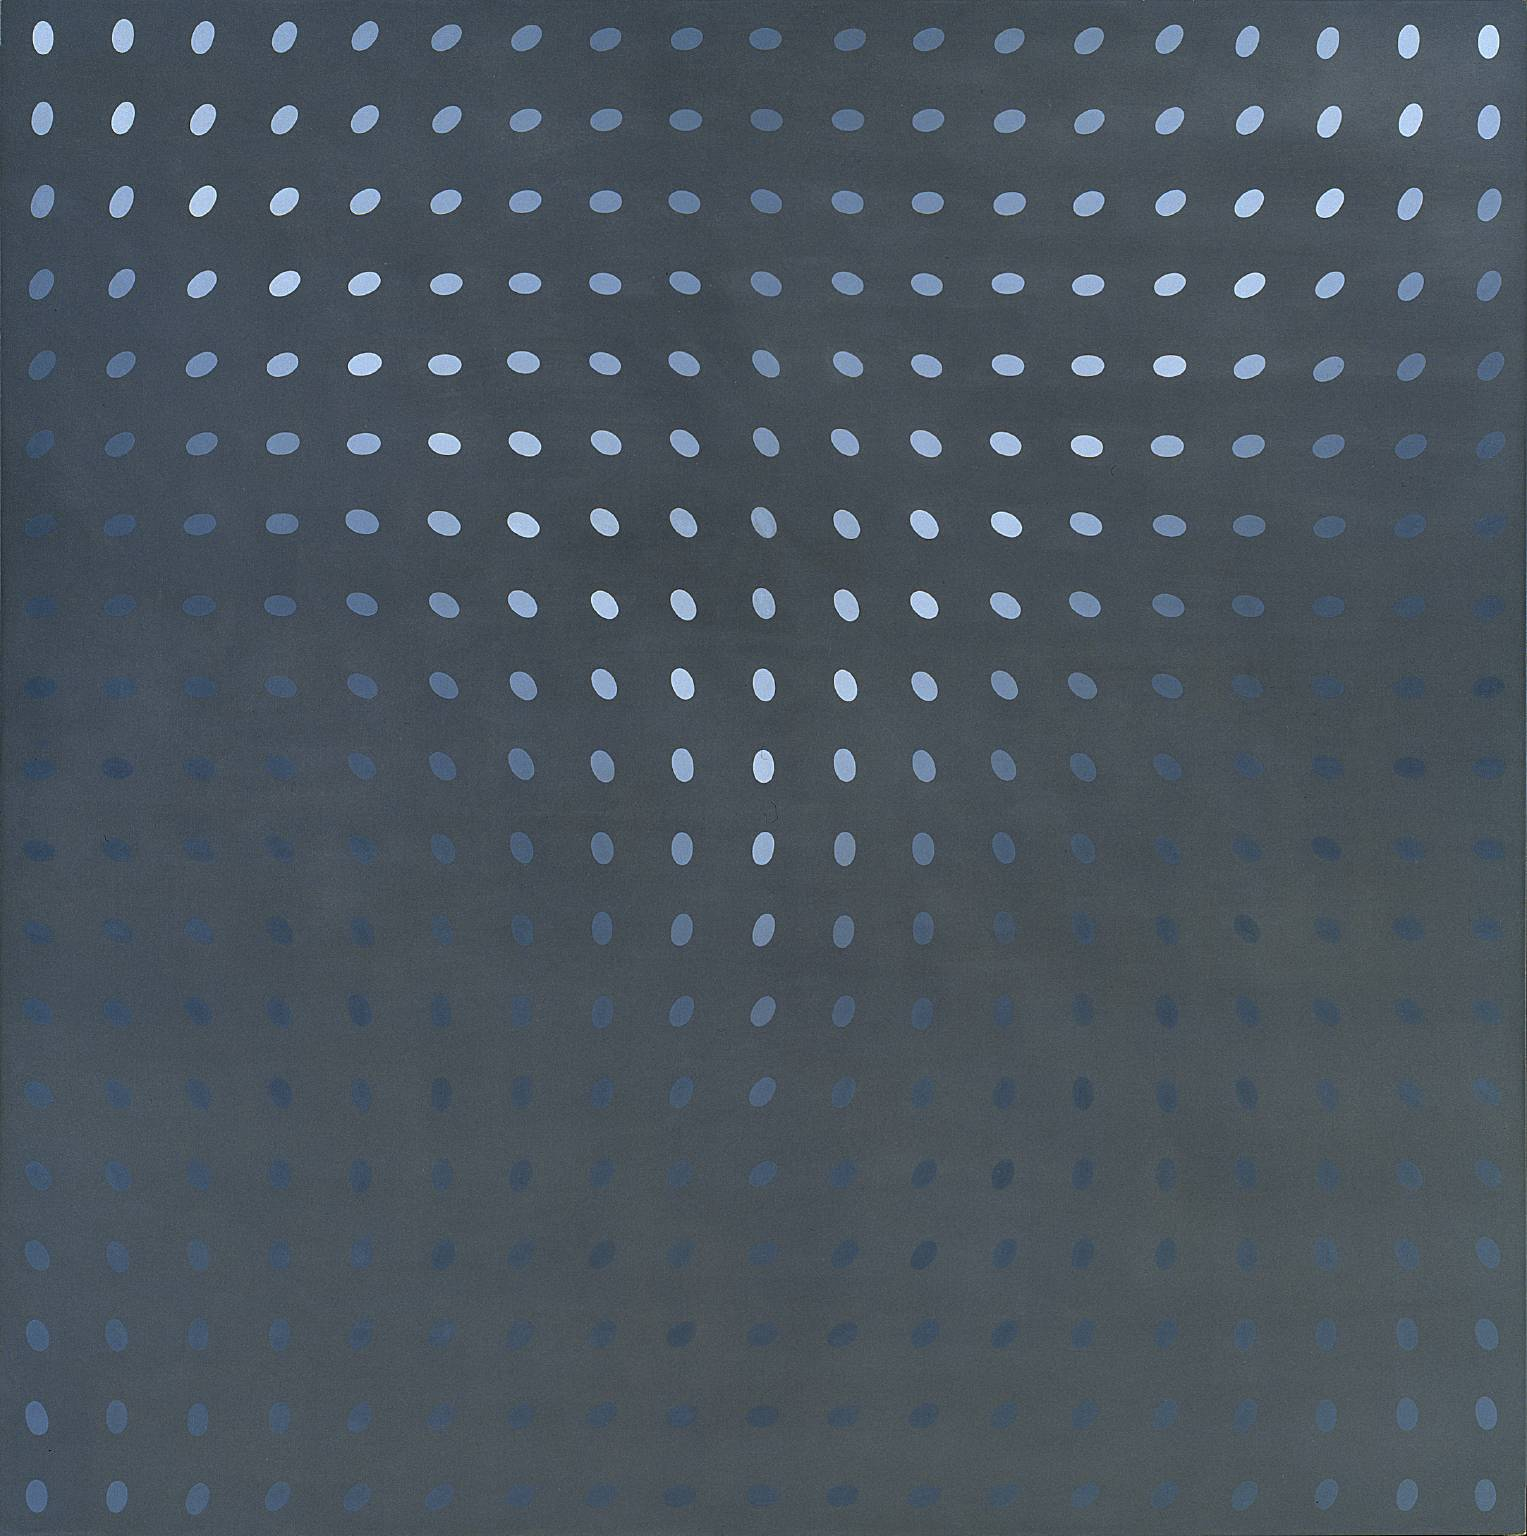 Bridget Riley (British, Op Art, b. 1931): Deny II, 1967. Polyvinyl acetate emulsion paint on canvas, 217.2 x 217.2 x 40 cm. Tate Modern, London, UK. © Bridget Riley. © This artwork may be protected by copyright. It is posted on the site in accordance with fair use principles.